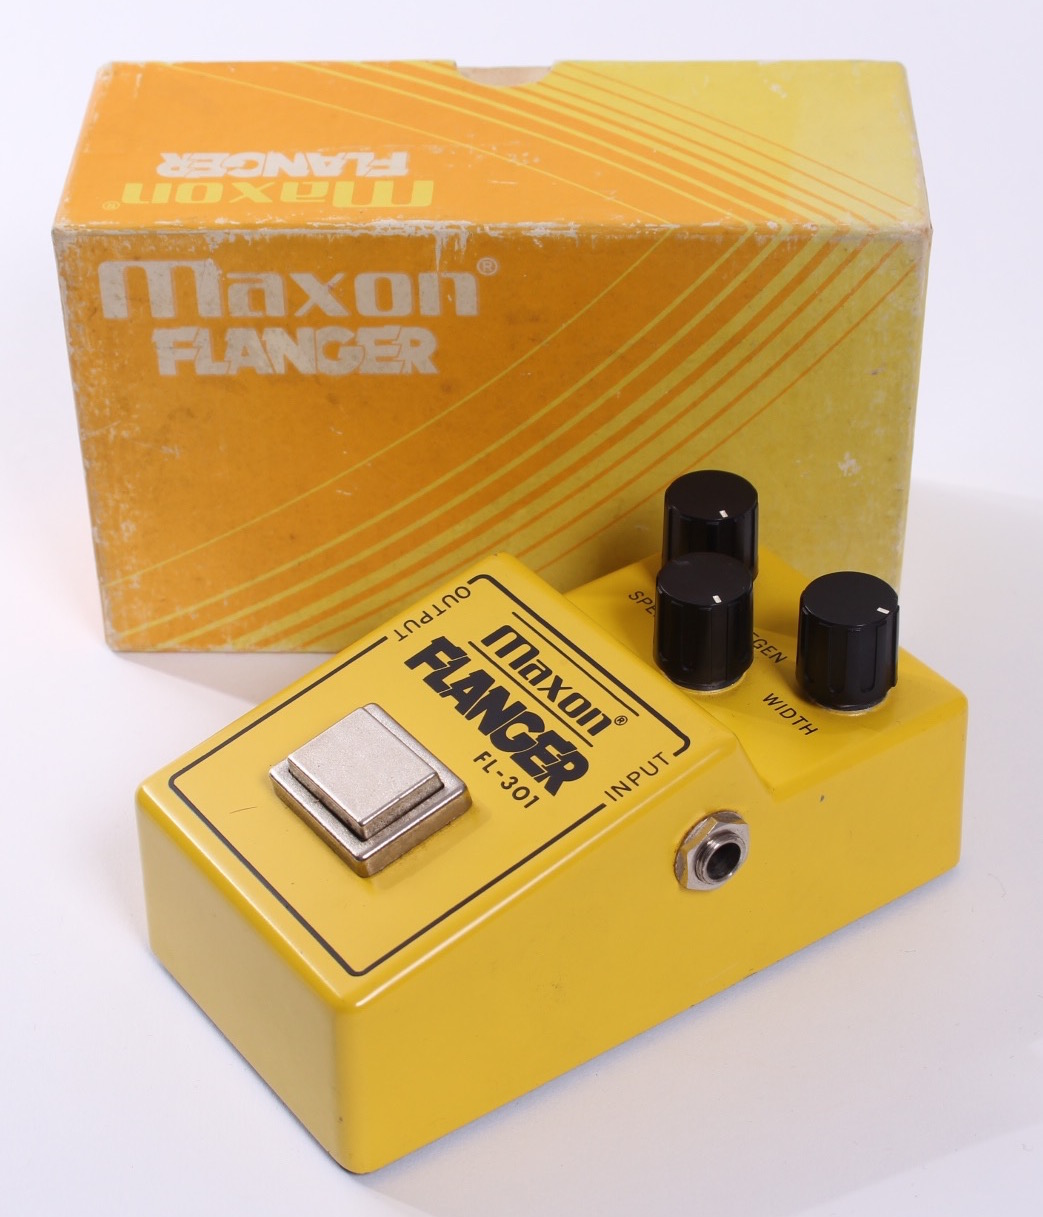 maxon flanger fl 301 1981 yellow effect pedal for sale yeahman 39 s guitars. Black Bedroom Furniture Sets. Home Design Ideas